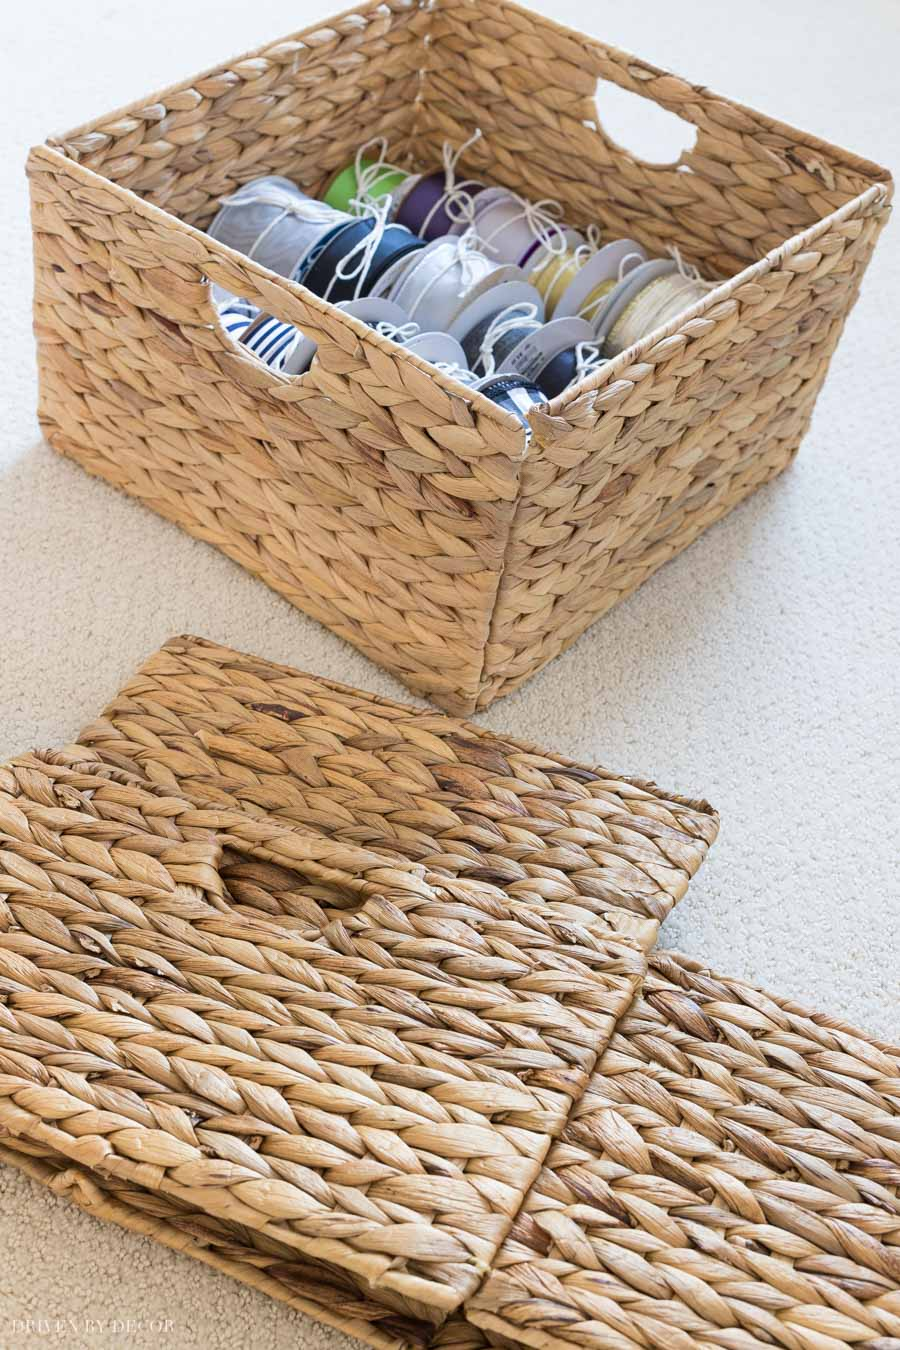 Woven baskets that fold for easy storage - so smart!